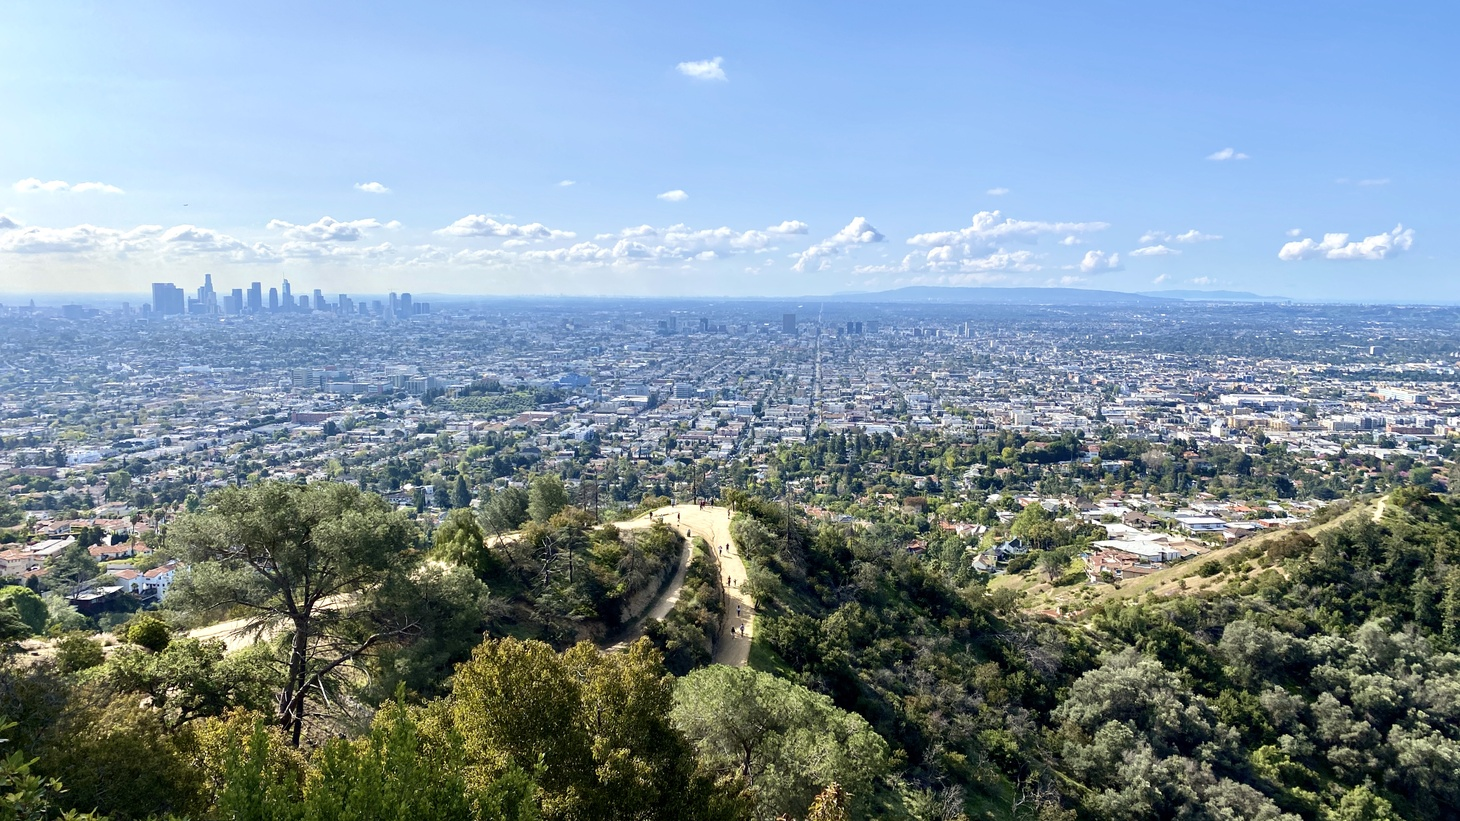 View of hiking trails, Griffith Park, and downtown LA in the distance. March 21, 2020.